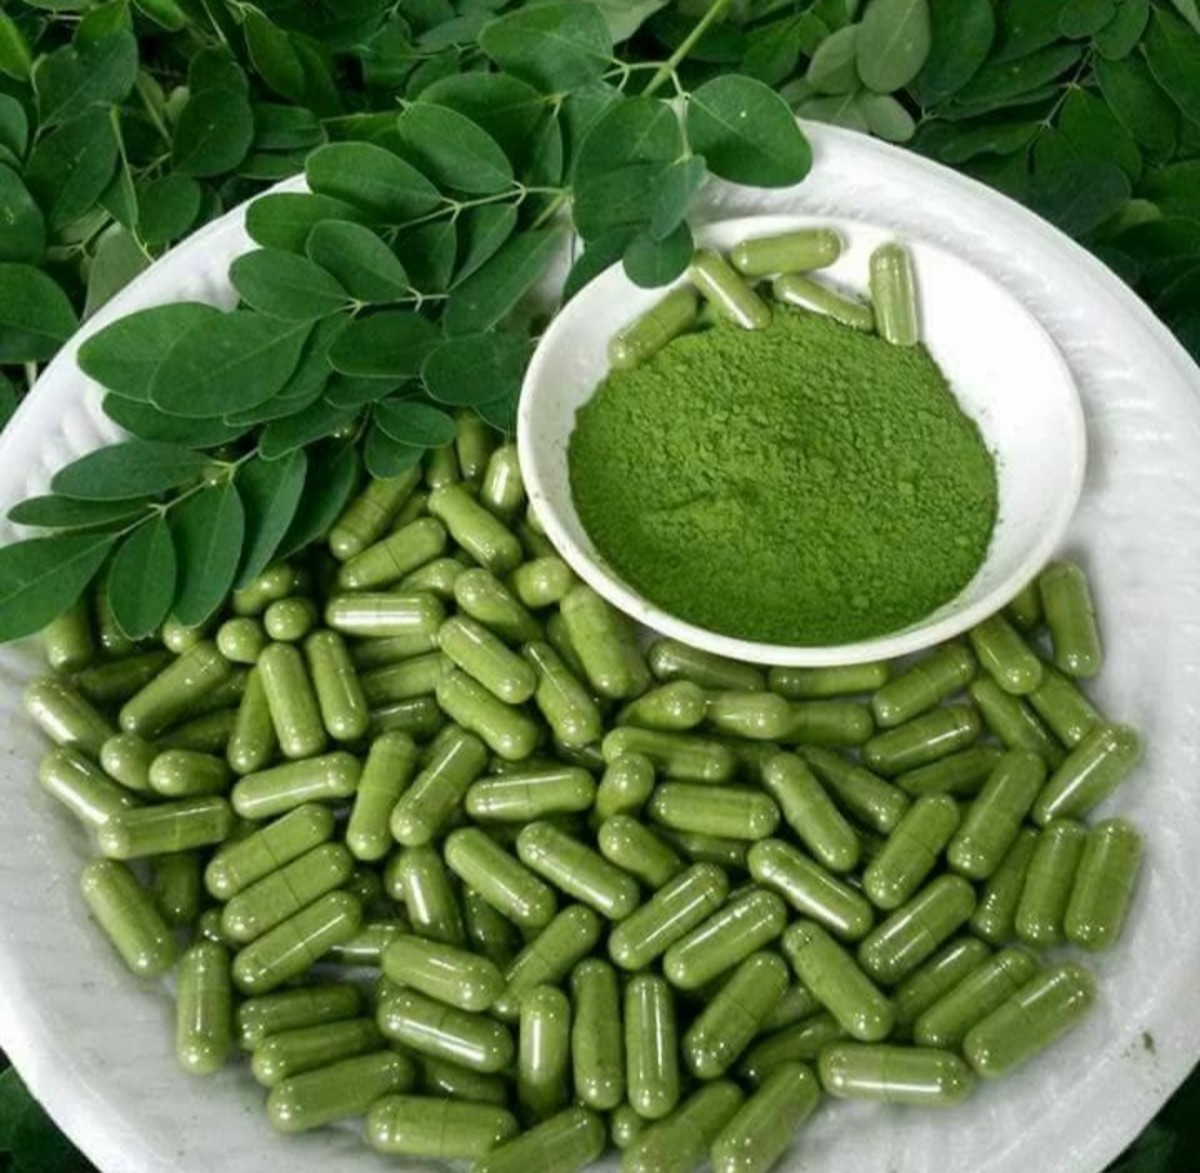 Moringa leaf powder is consumed as nutritional supplement